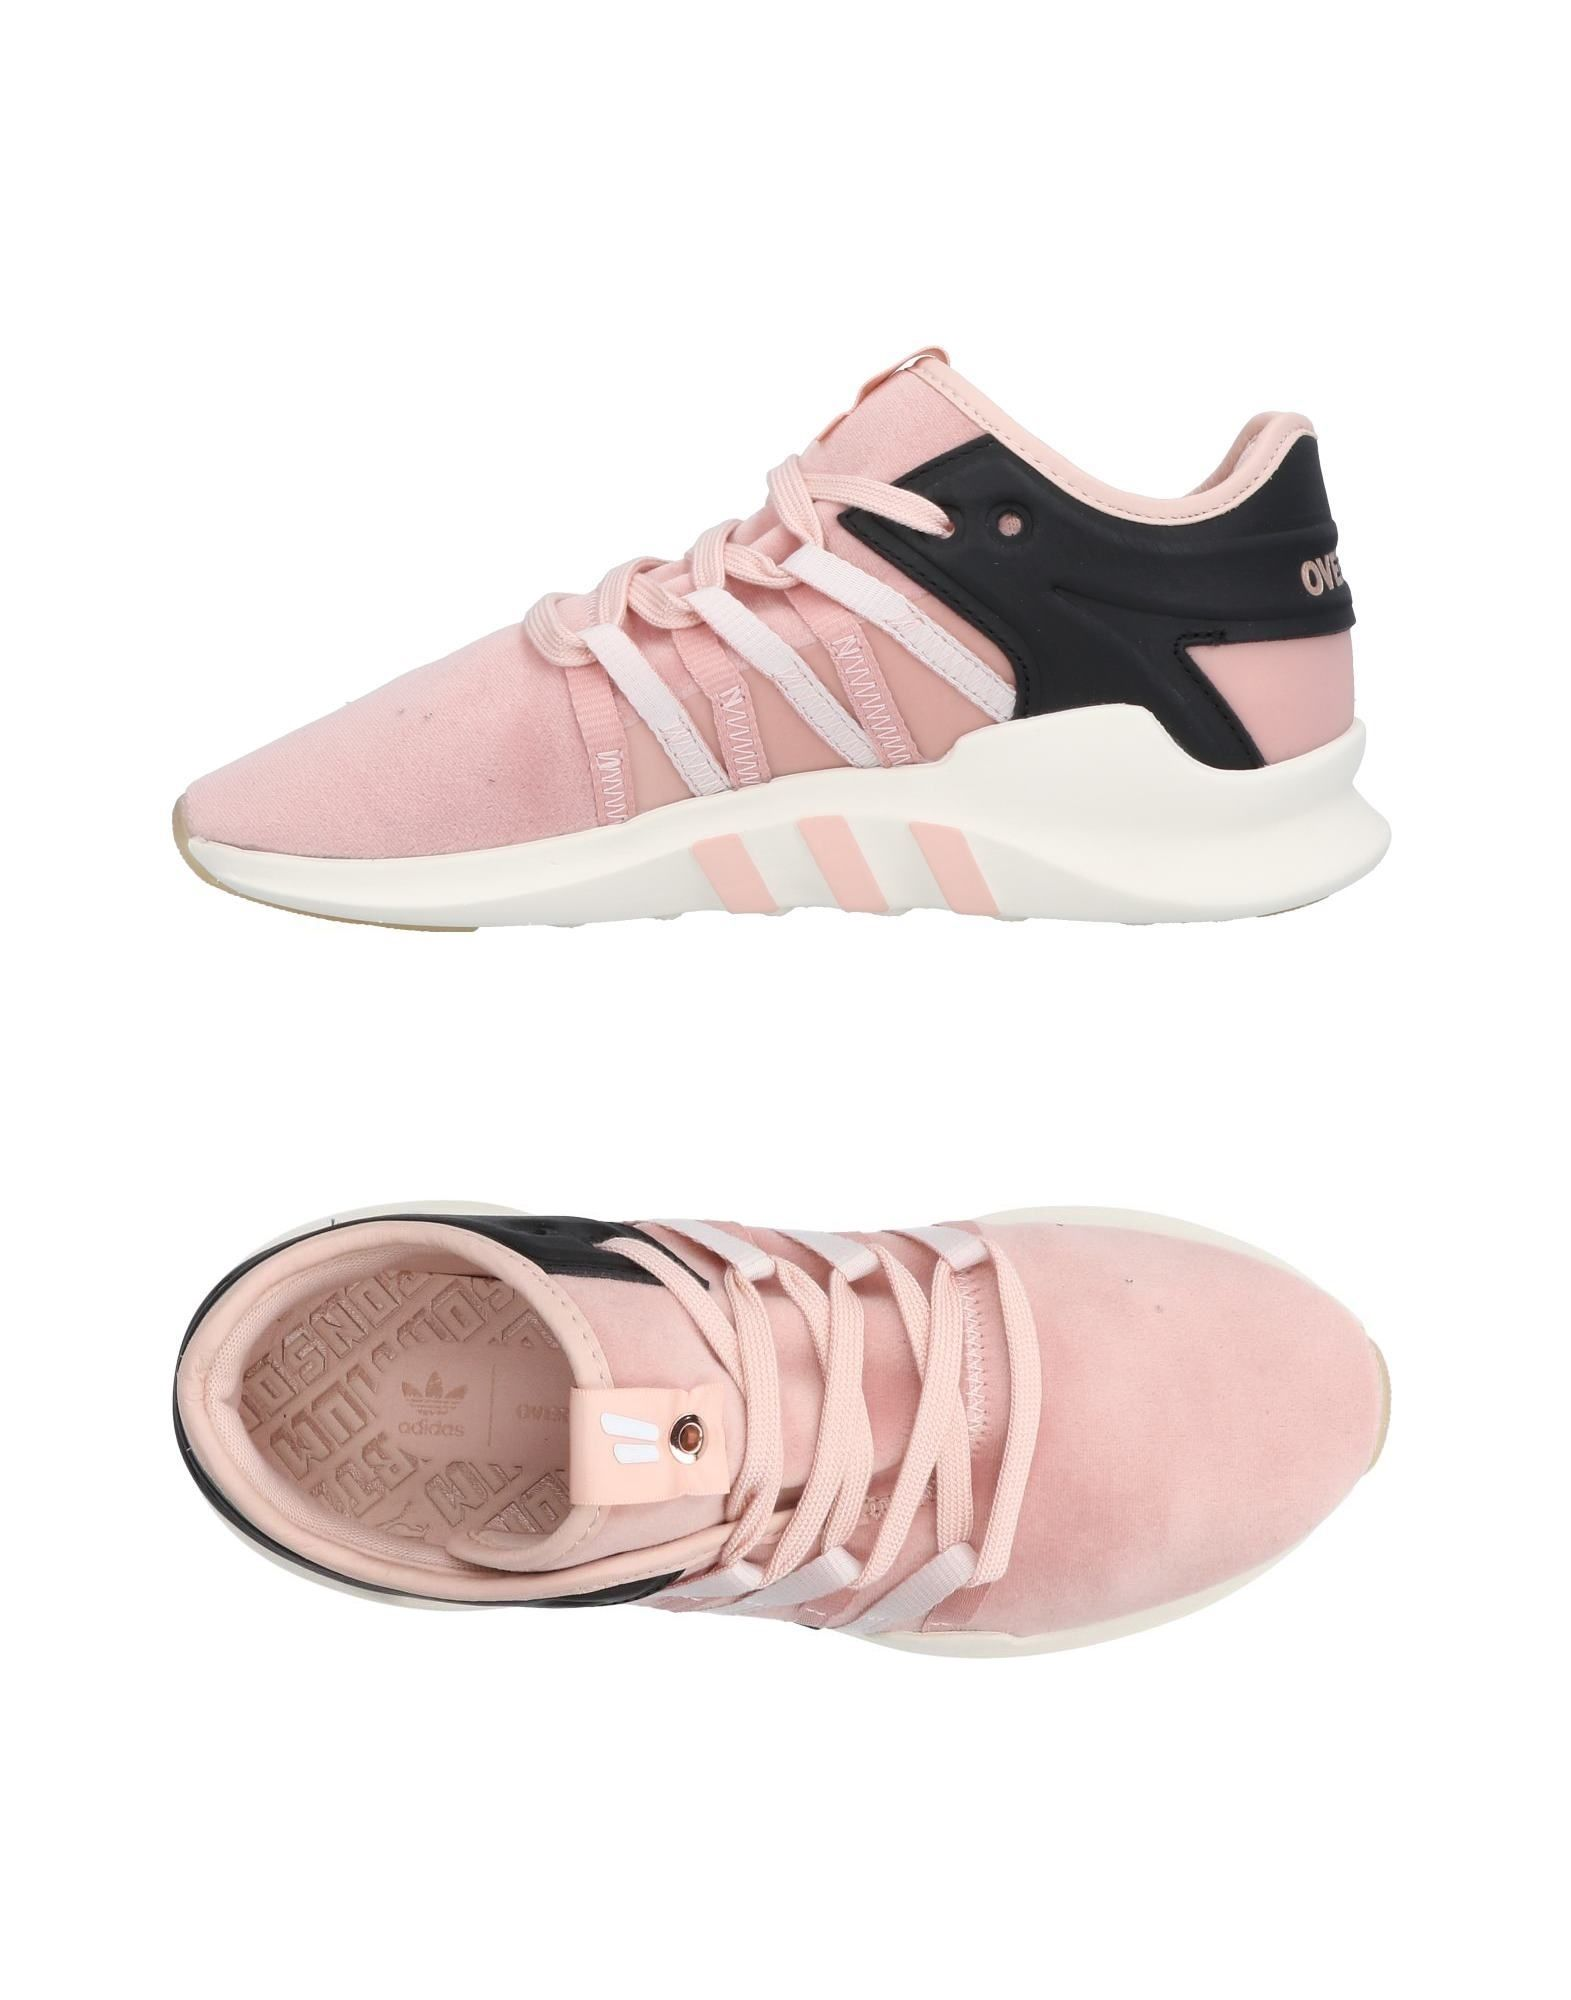 Sneakers Adidas Originals Donna - 11453663HI